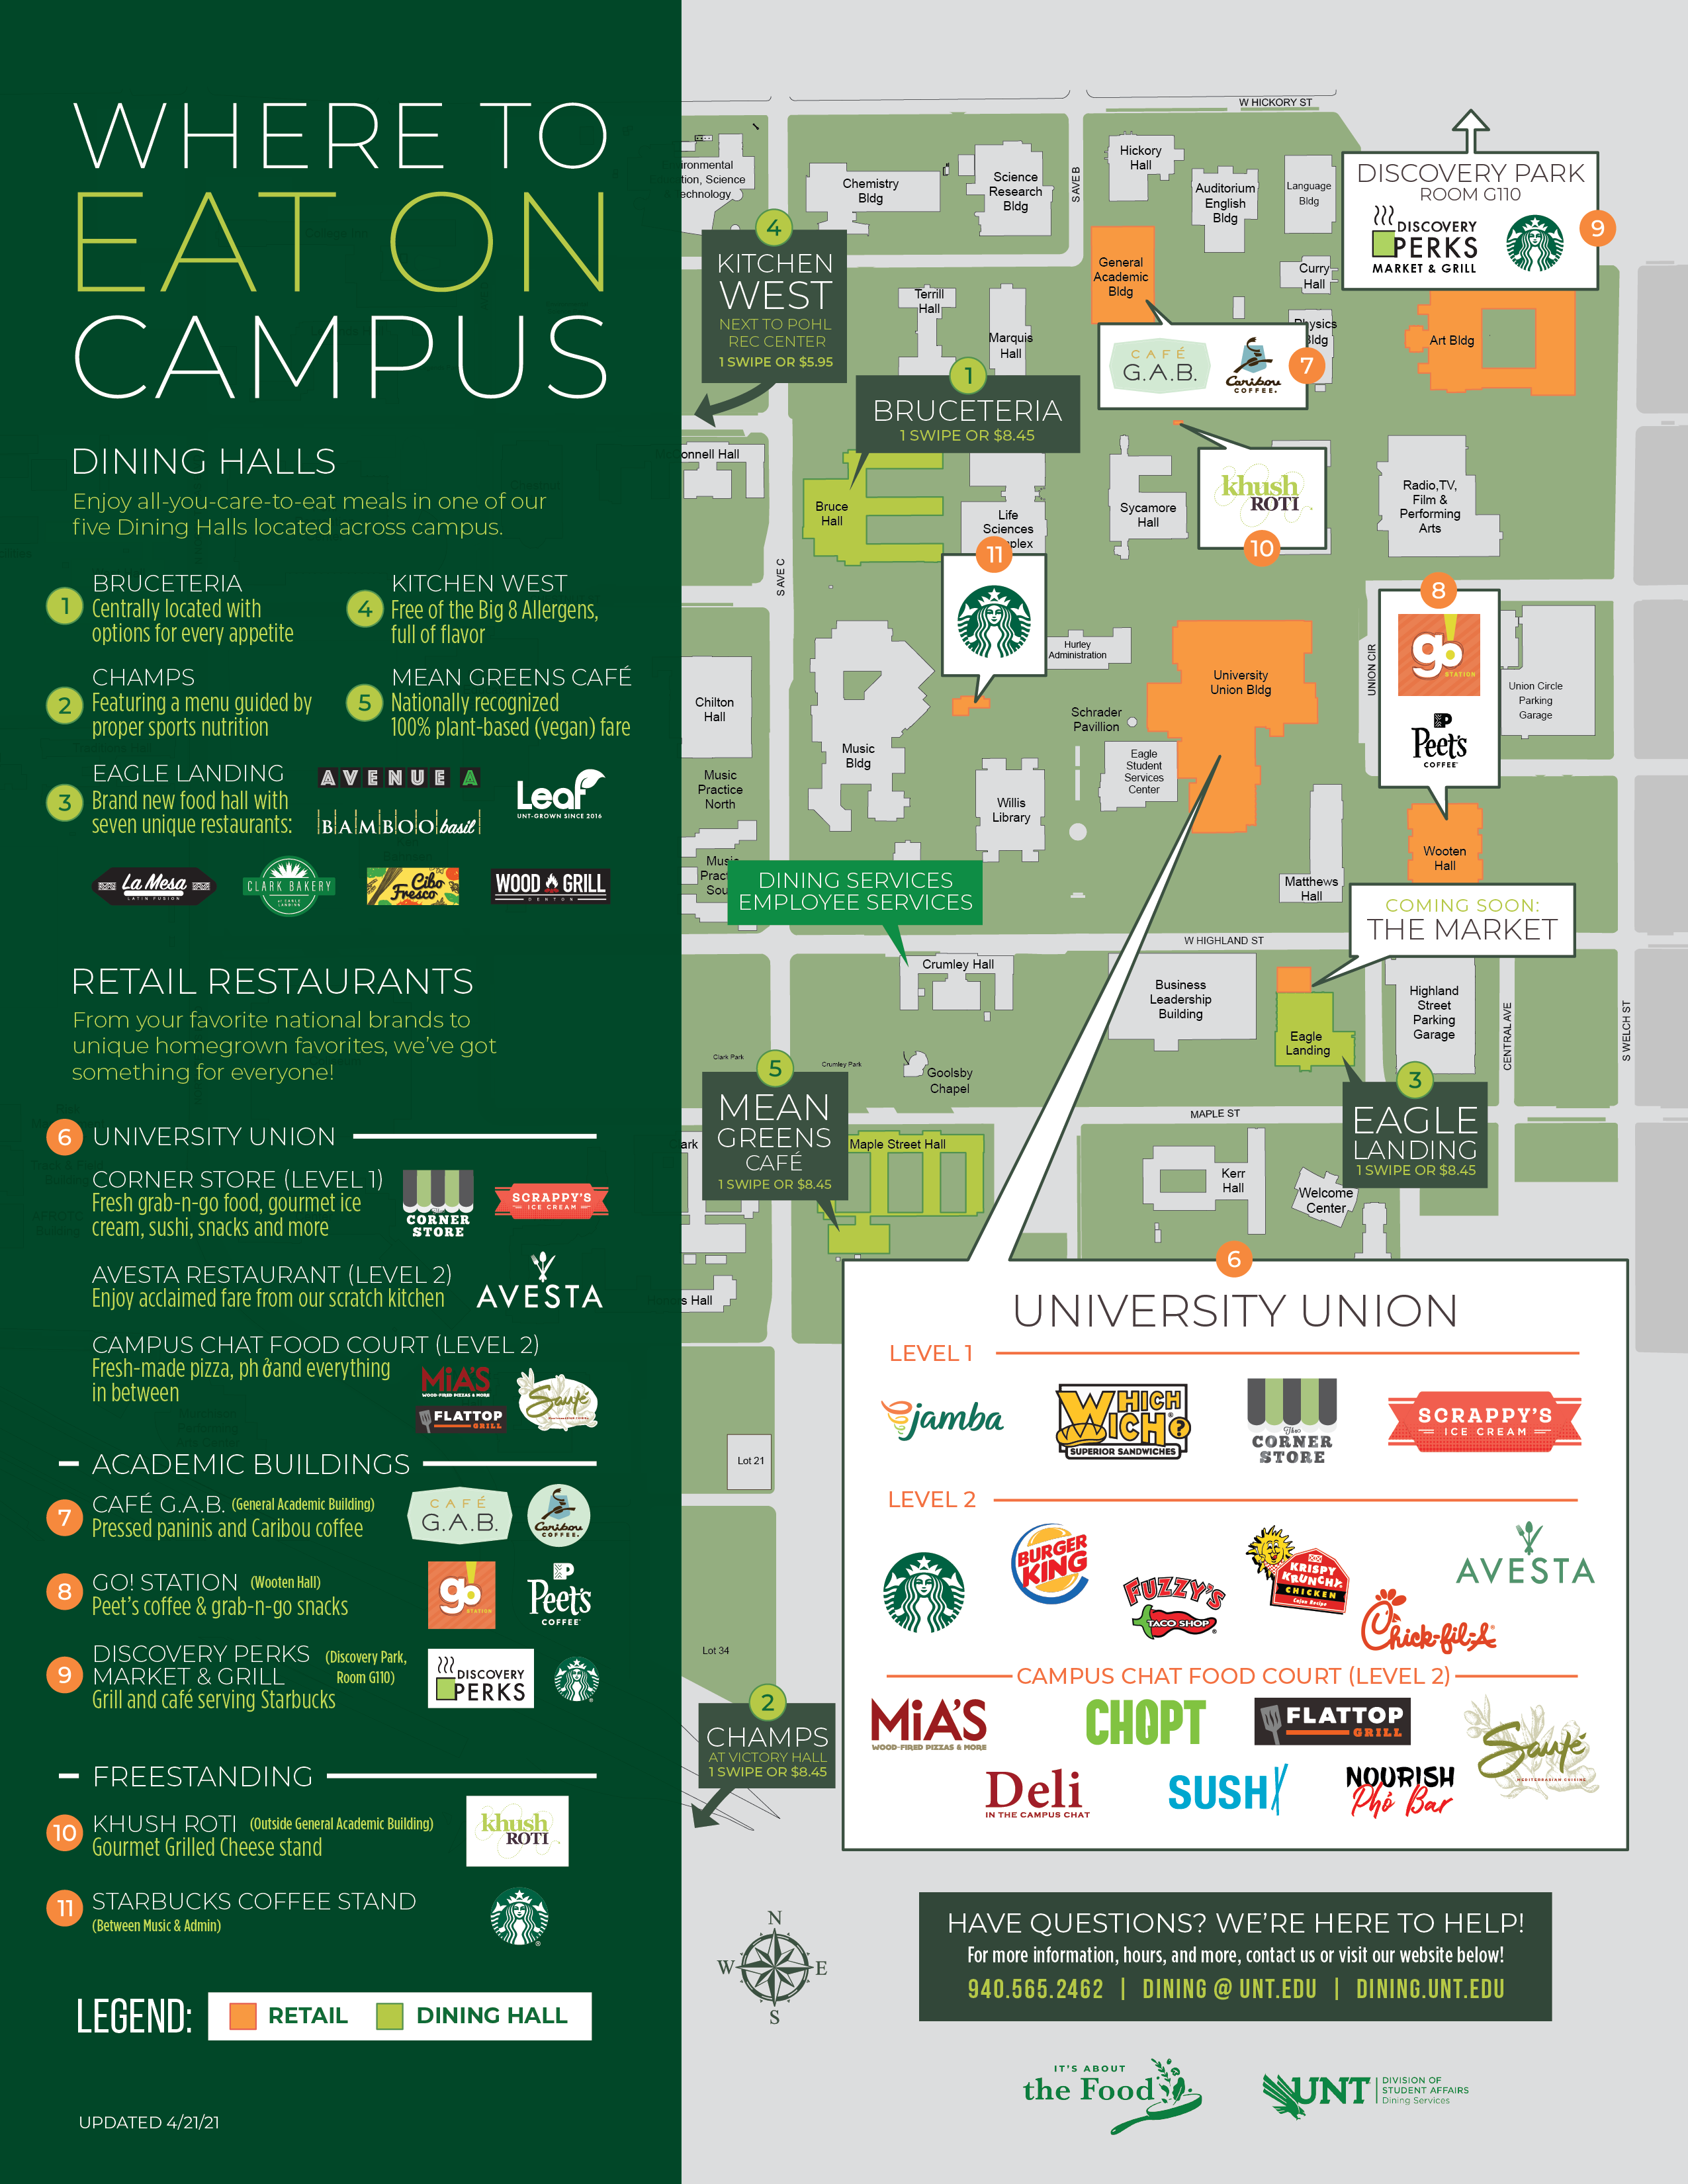 Where to eat on campus map